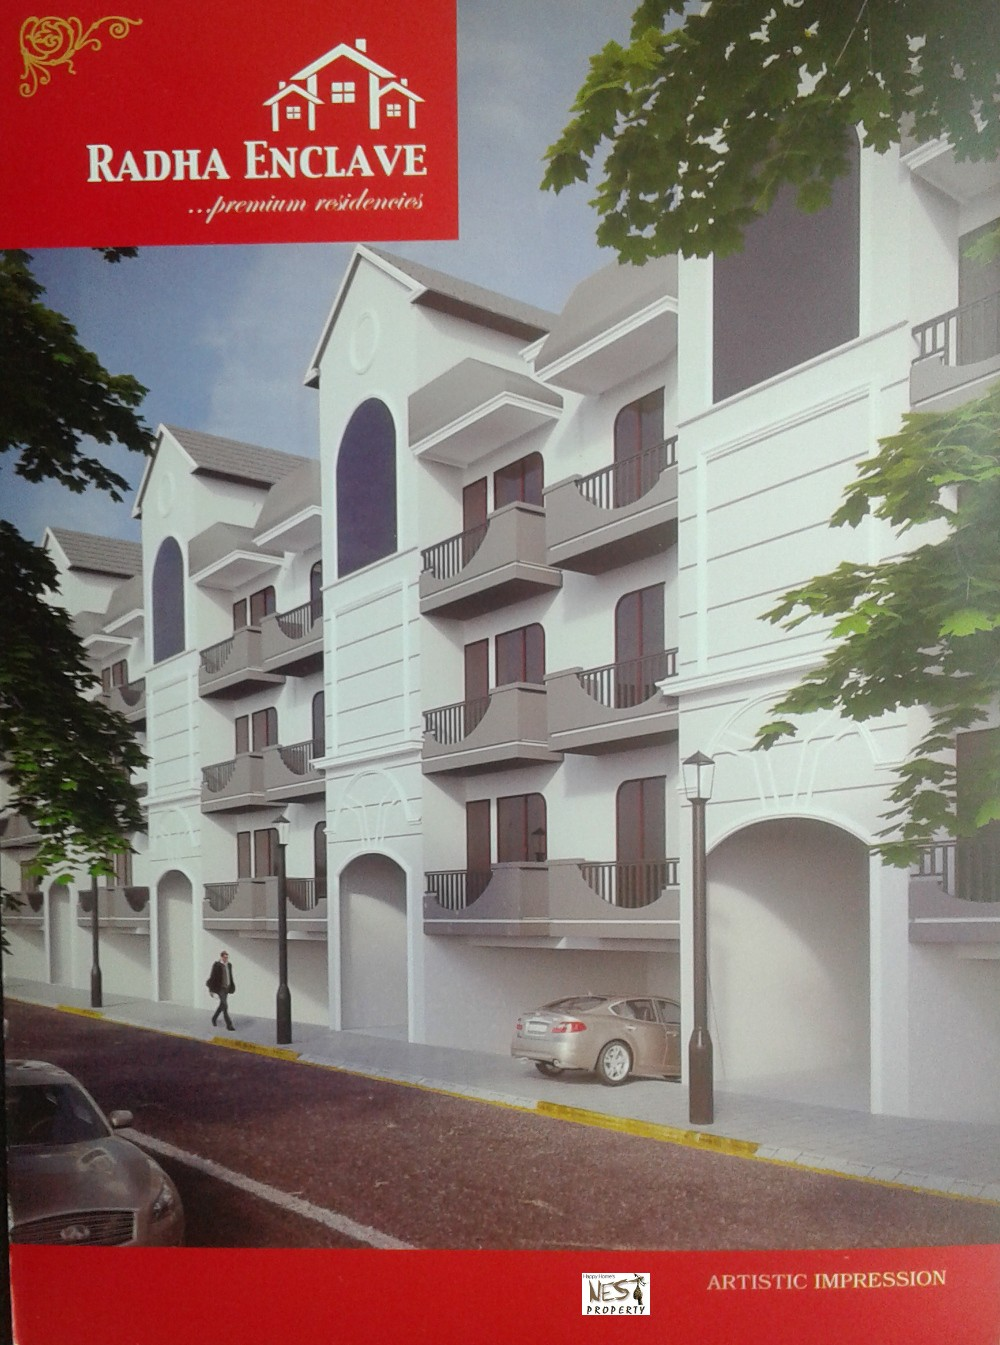 2 Bhk Ready To Move Flats in Radha Enclave at Kishan Pura